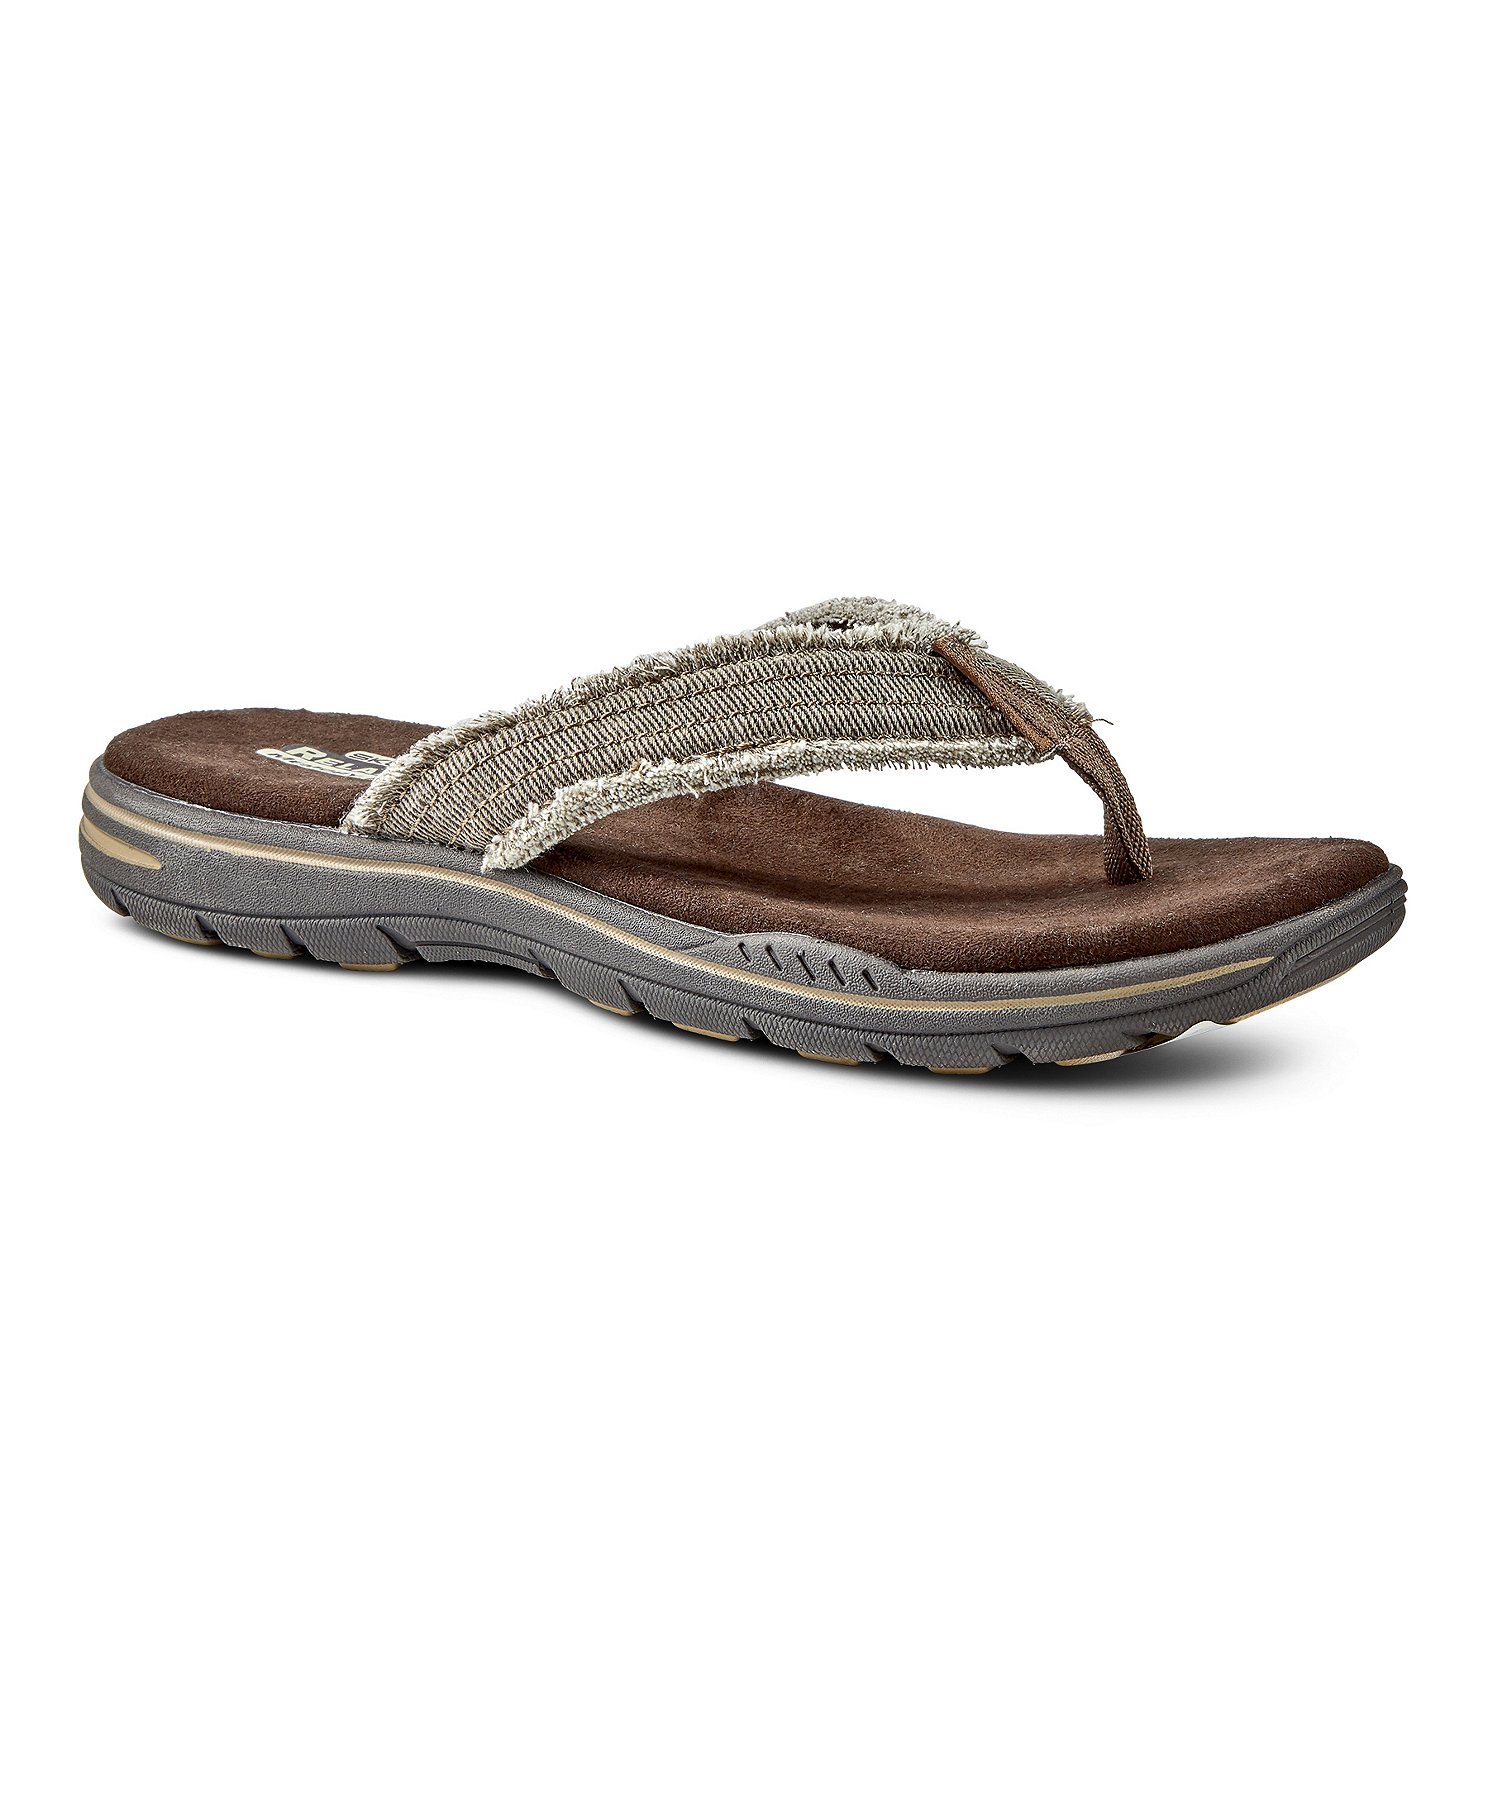 skechers memory foam sandals mens